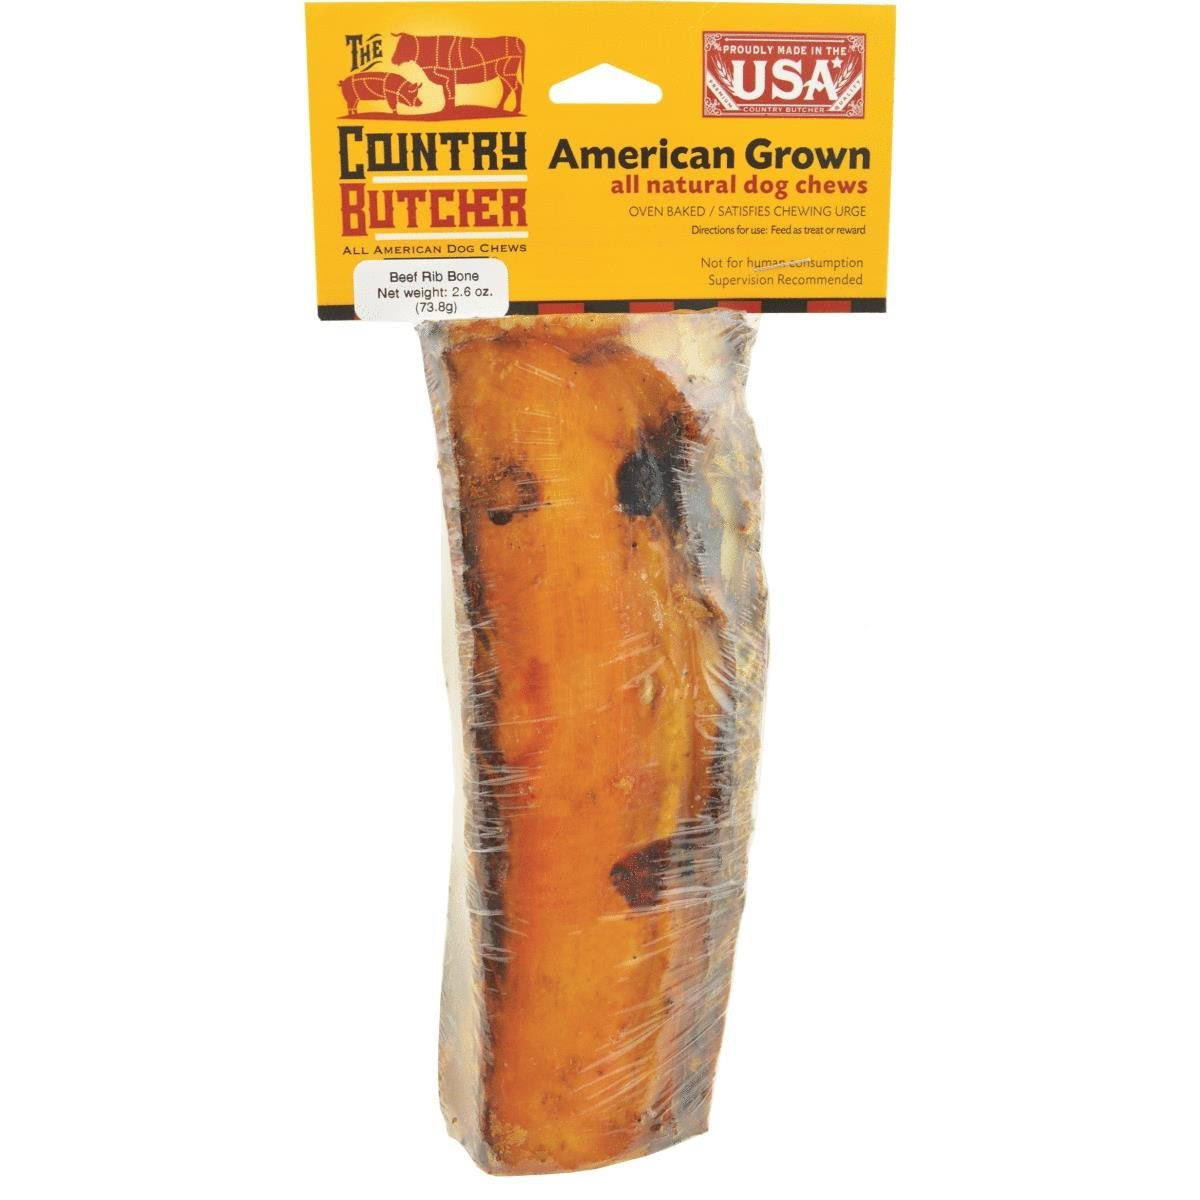 The Country Butcher 07666 Chew Bone - Beef Rib, 2.6oz